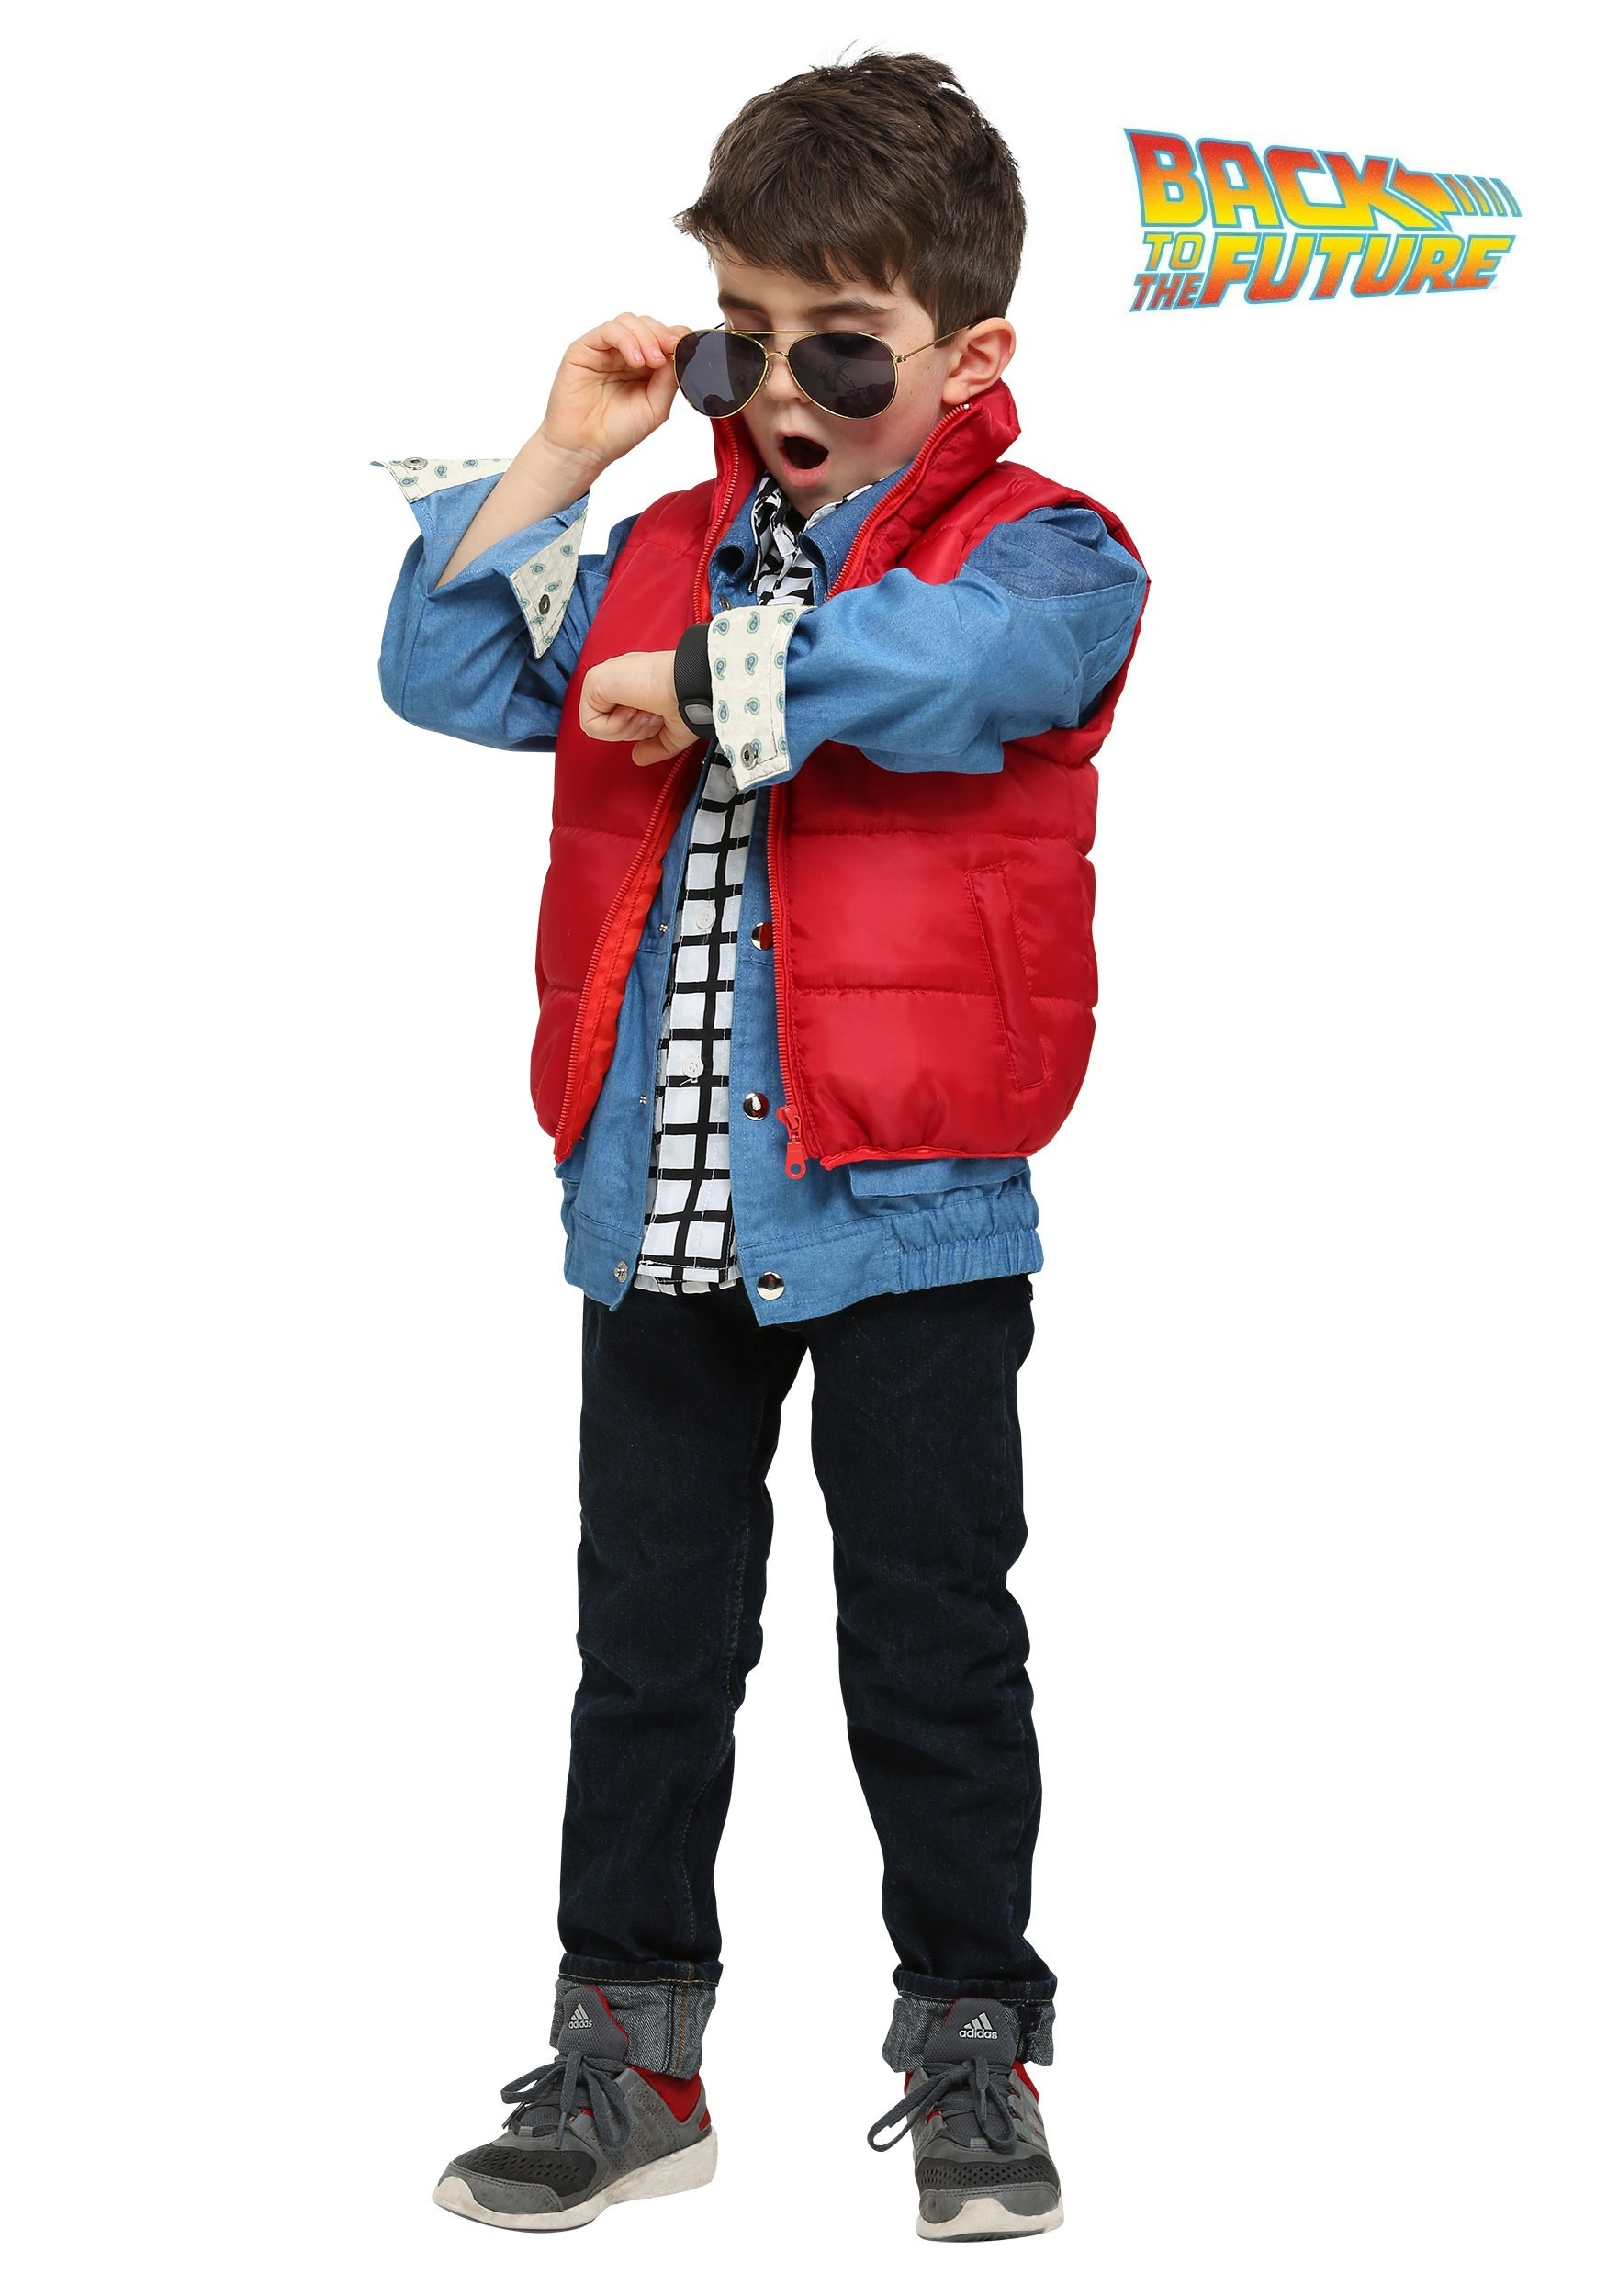 Back to the Future Marty McFly Toddler Costume